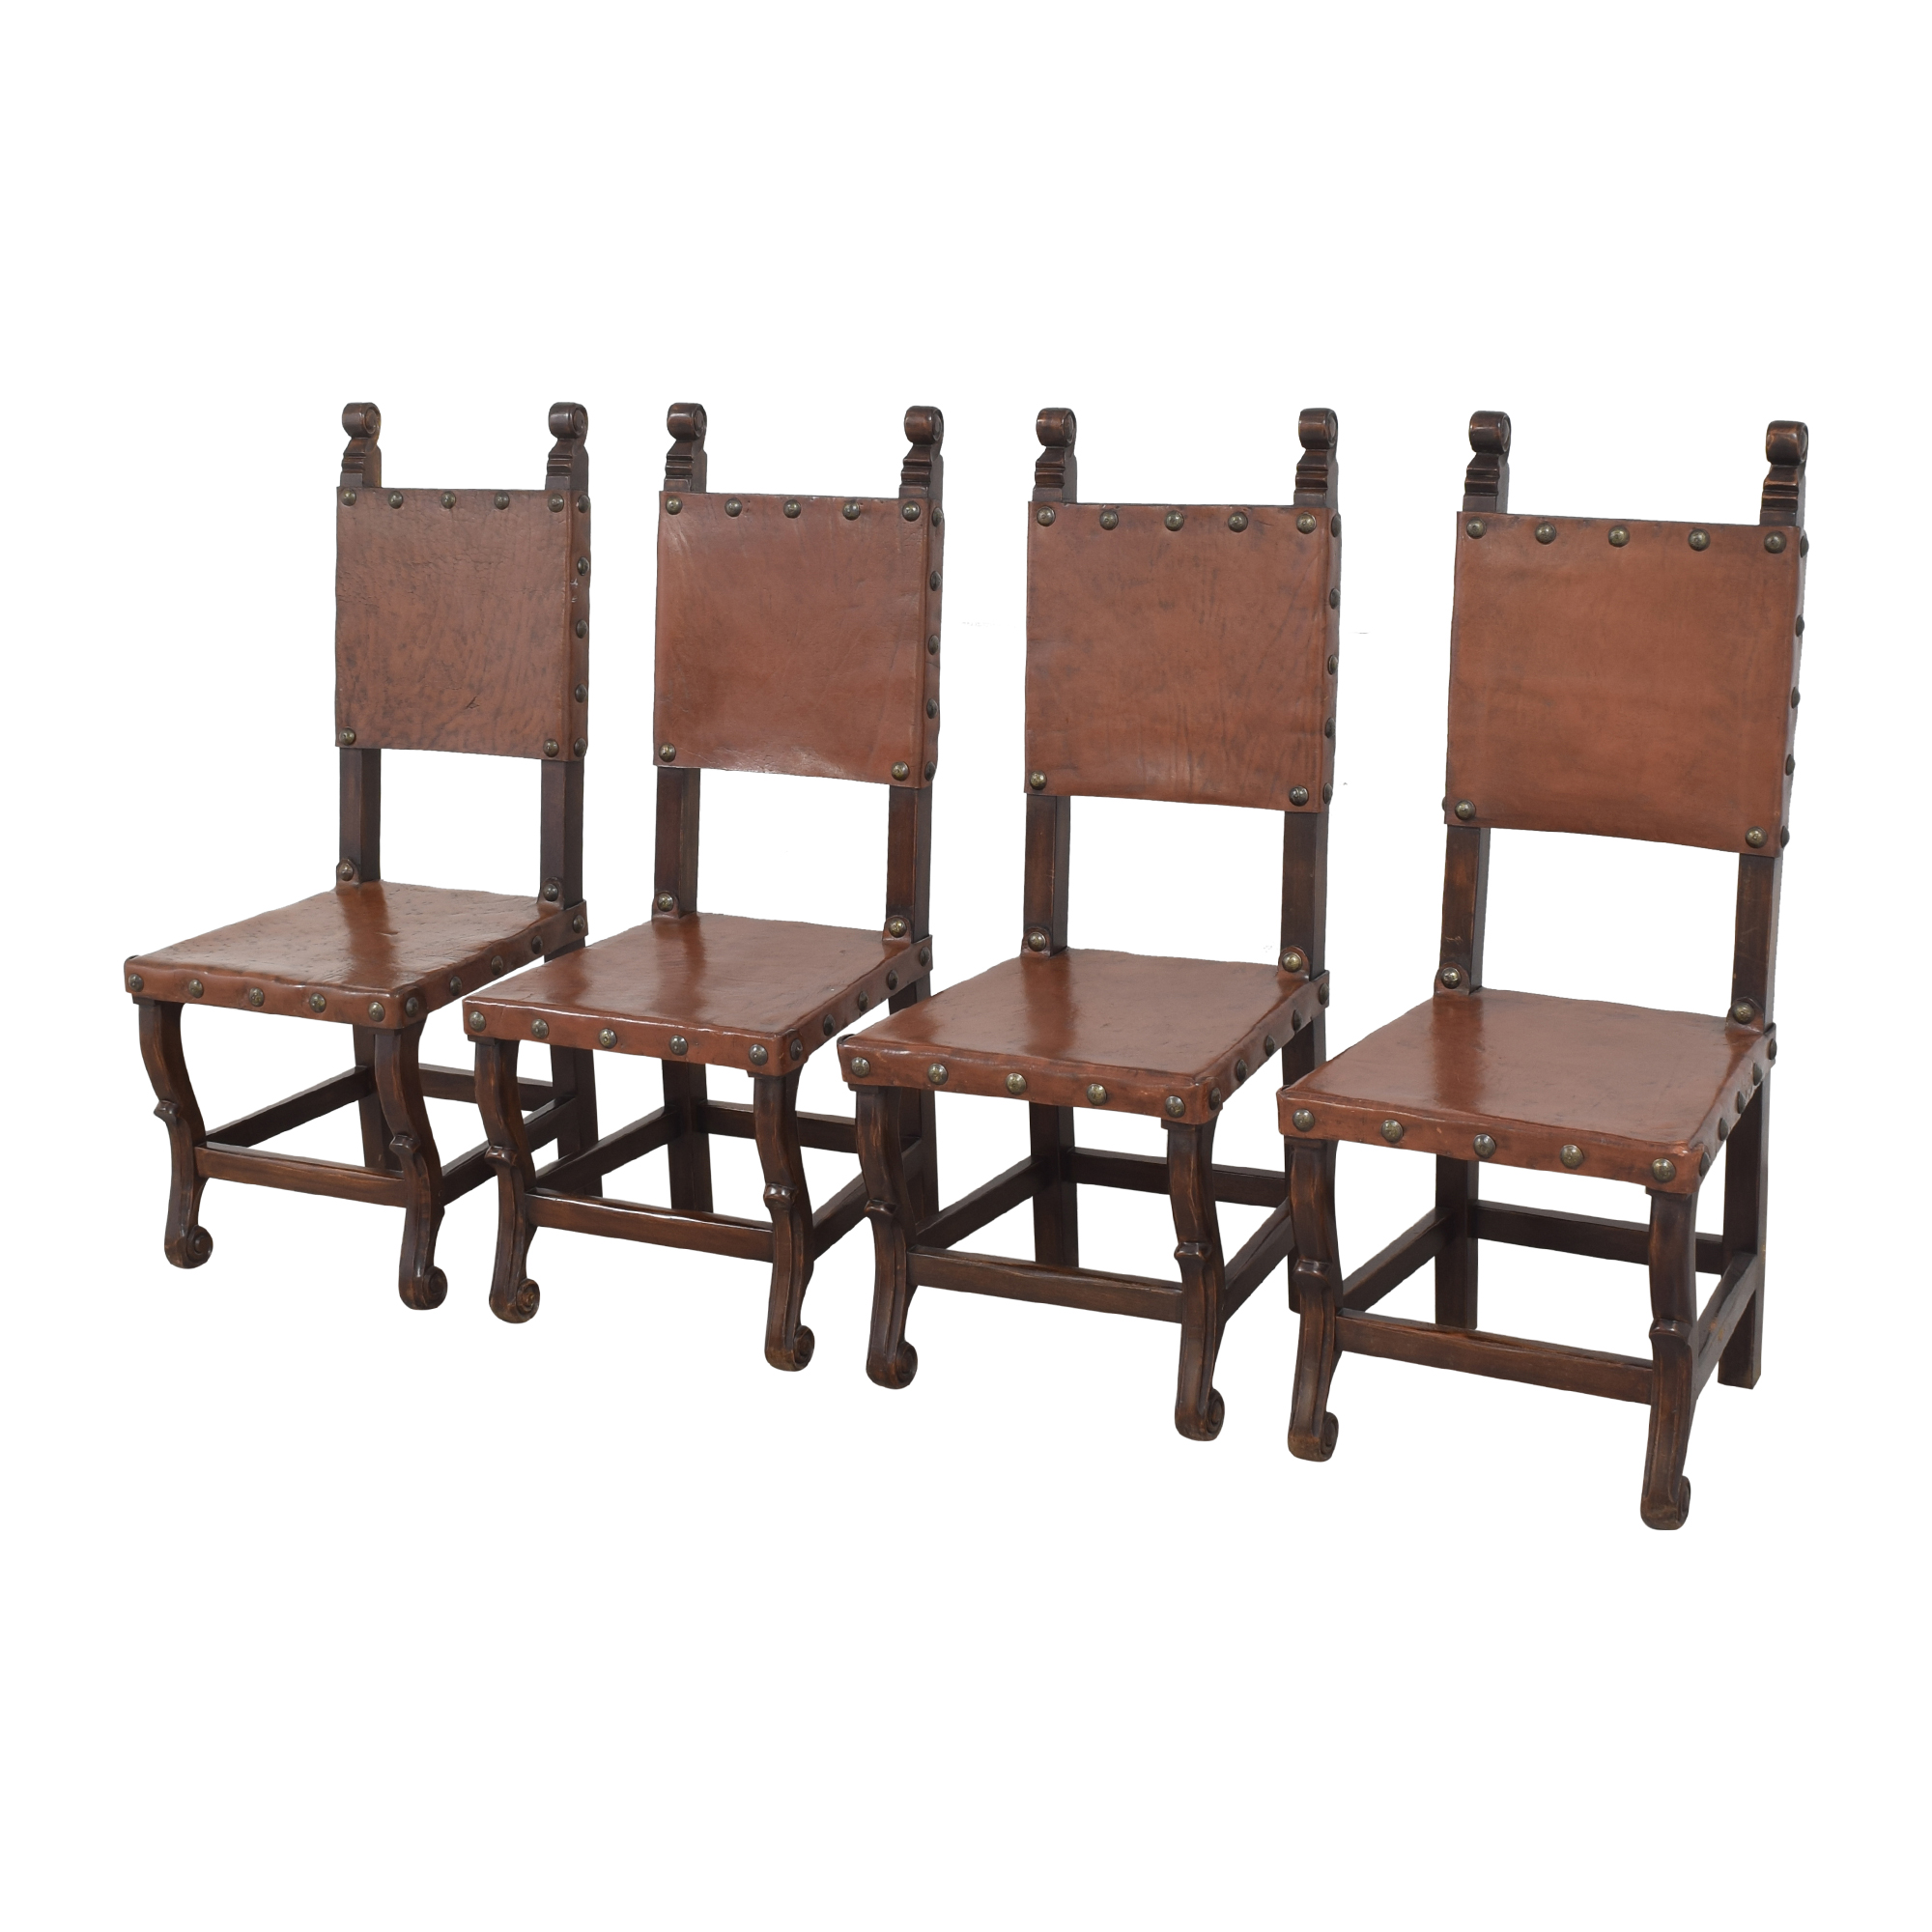 South Cone Furniture South Cone Nailhead Accented Dining Chairs second hand